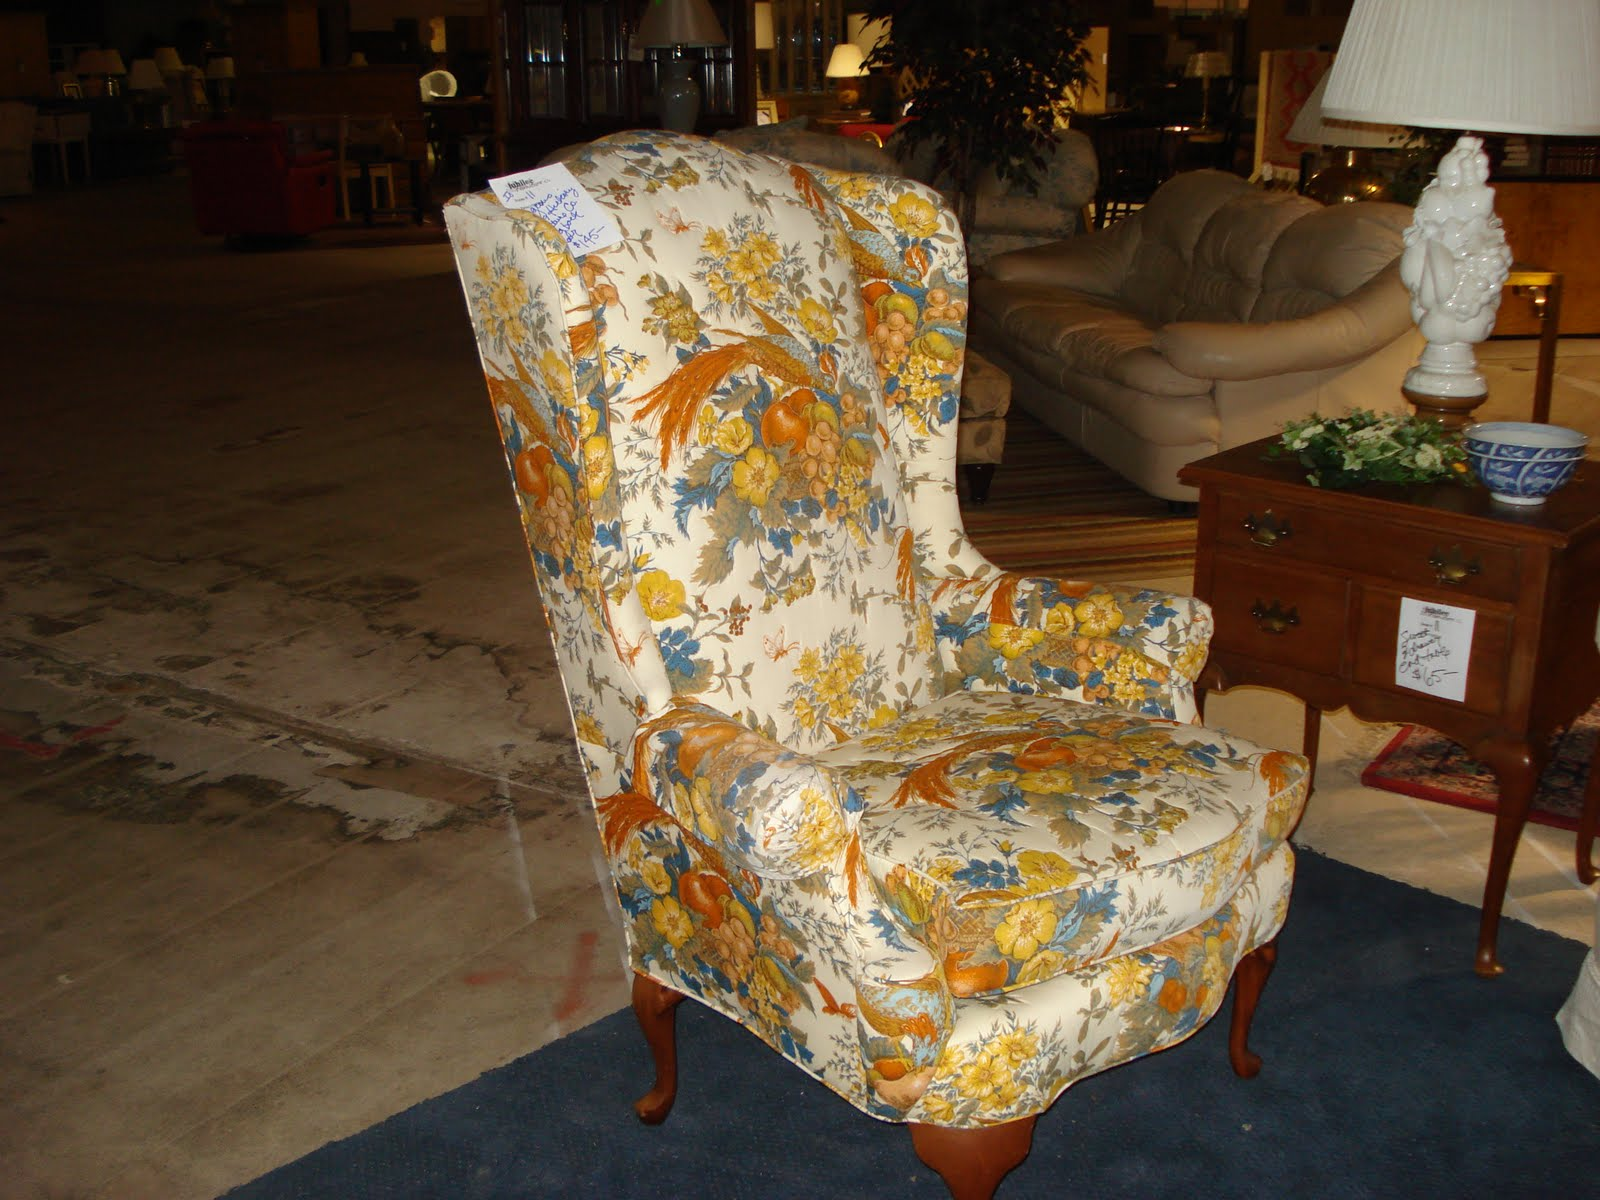 The Top Photo Of The North Hickory Furniture Co. Wing Back Chair In Orange  And Blue Is New This Week And There Are Two Of Them And Both Chairs Are In  ...